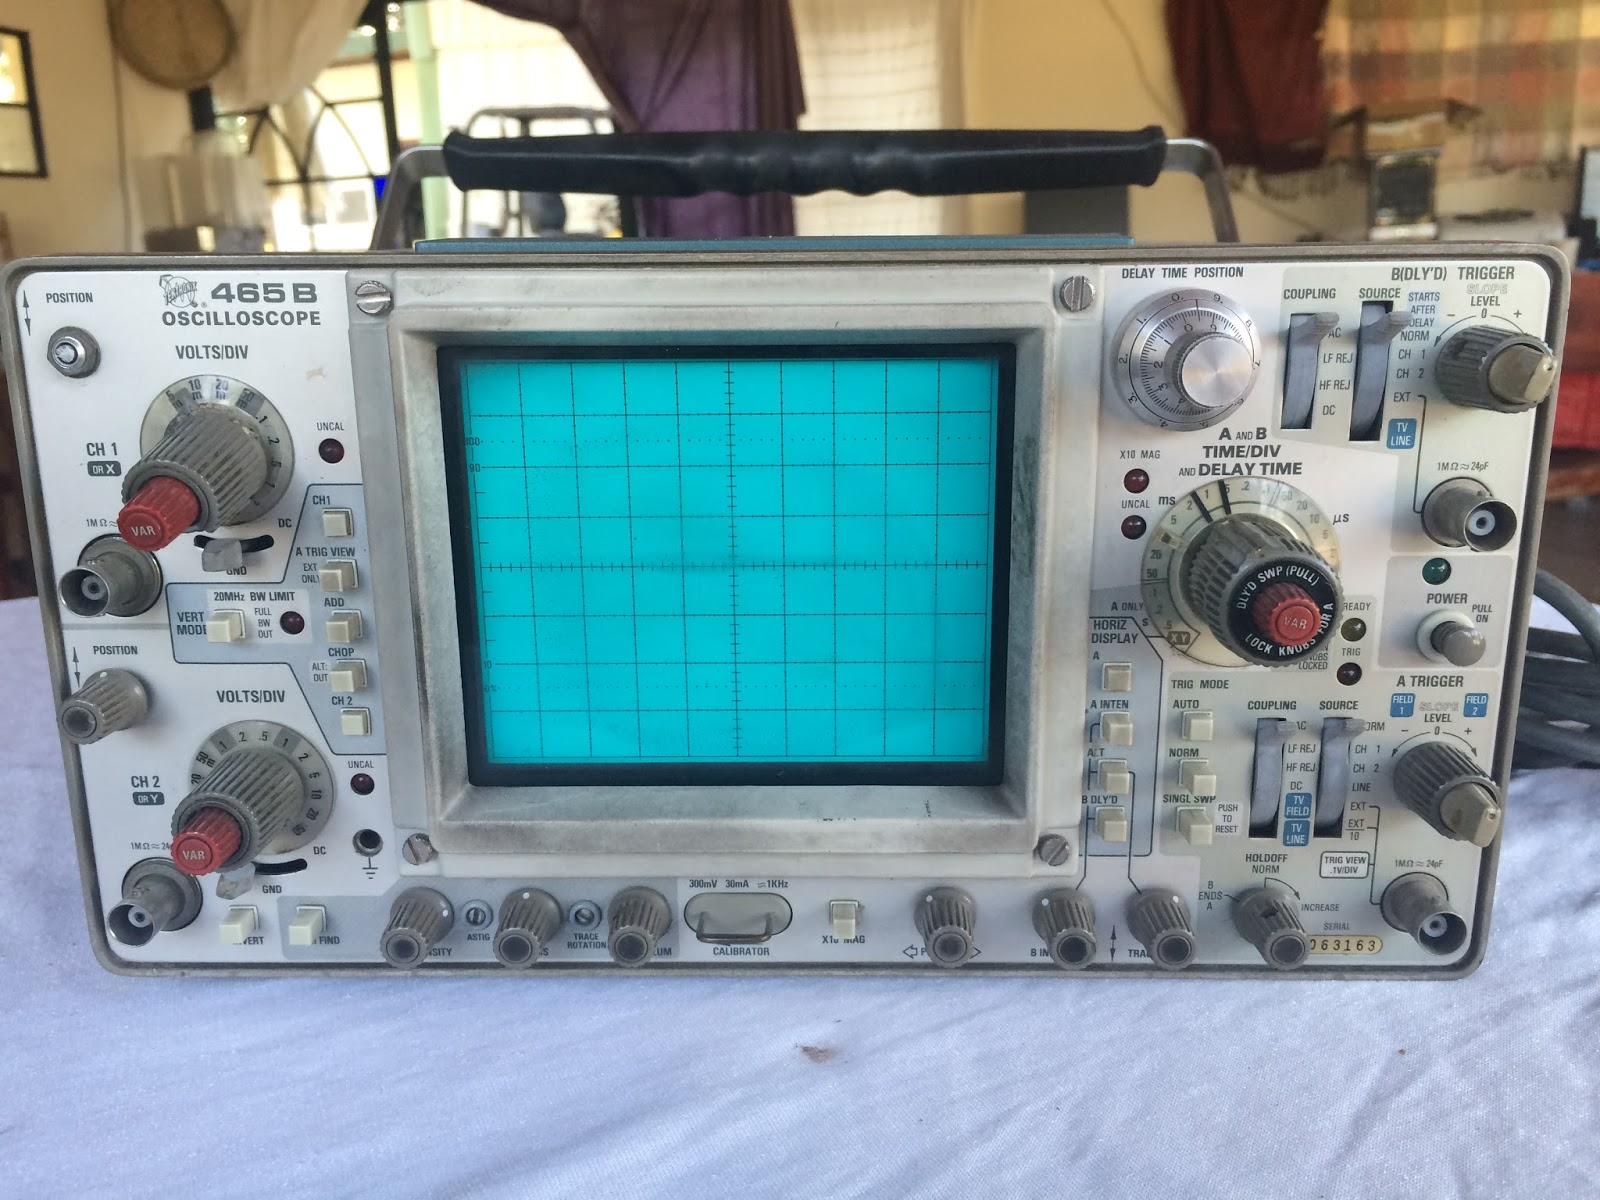 Tektronix Analog Oscilloscope : Channel analog oscilloscope tektronix b ebay